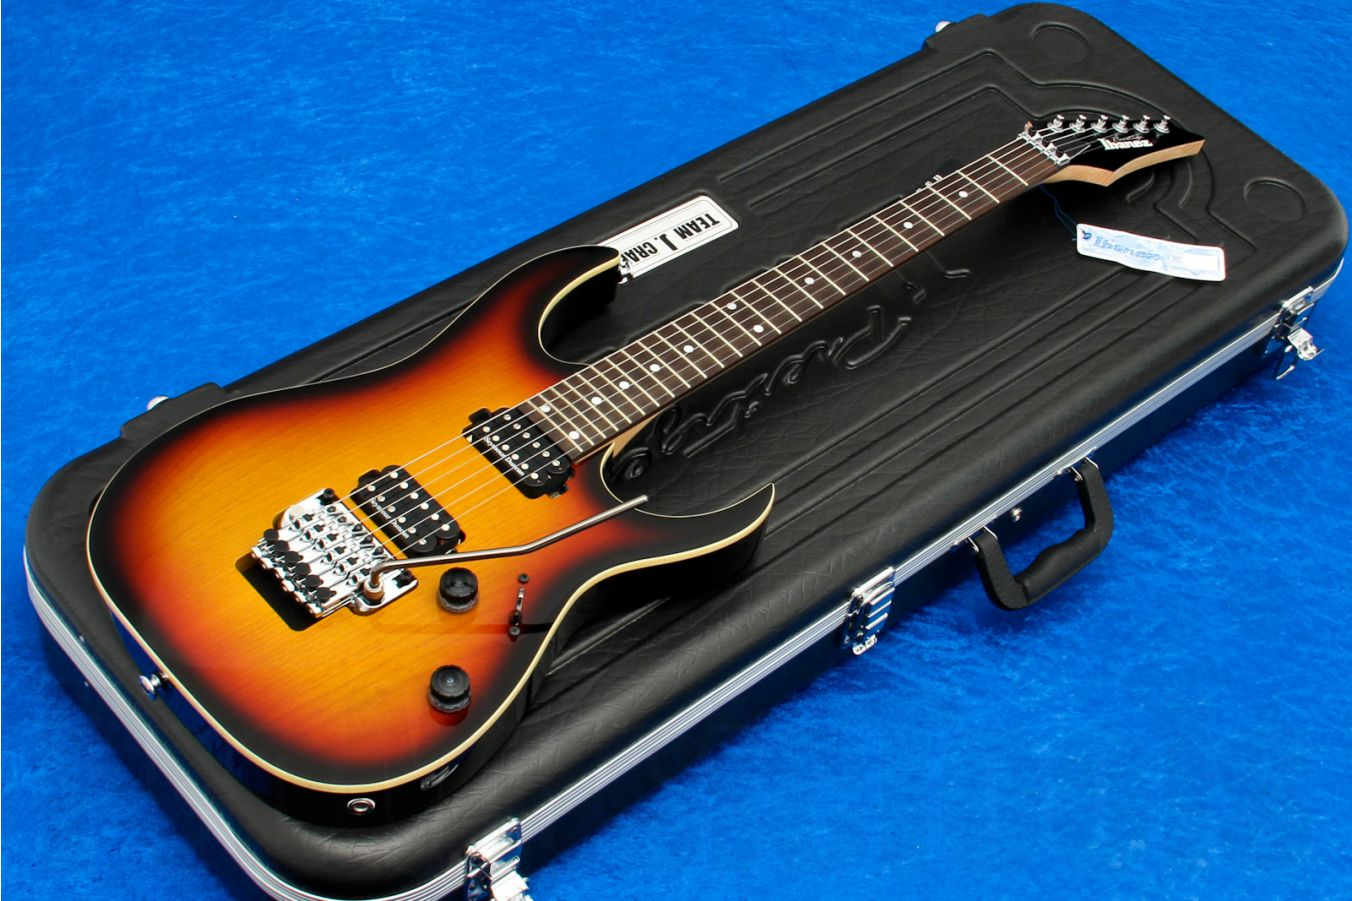 Ibanez RG2820ZD Prestige Limited Edition TFB - Tri Fade Burst (only 15 made) - demo